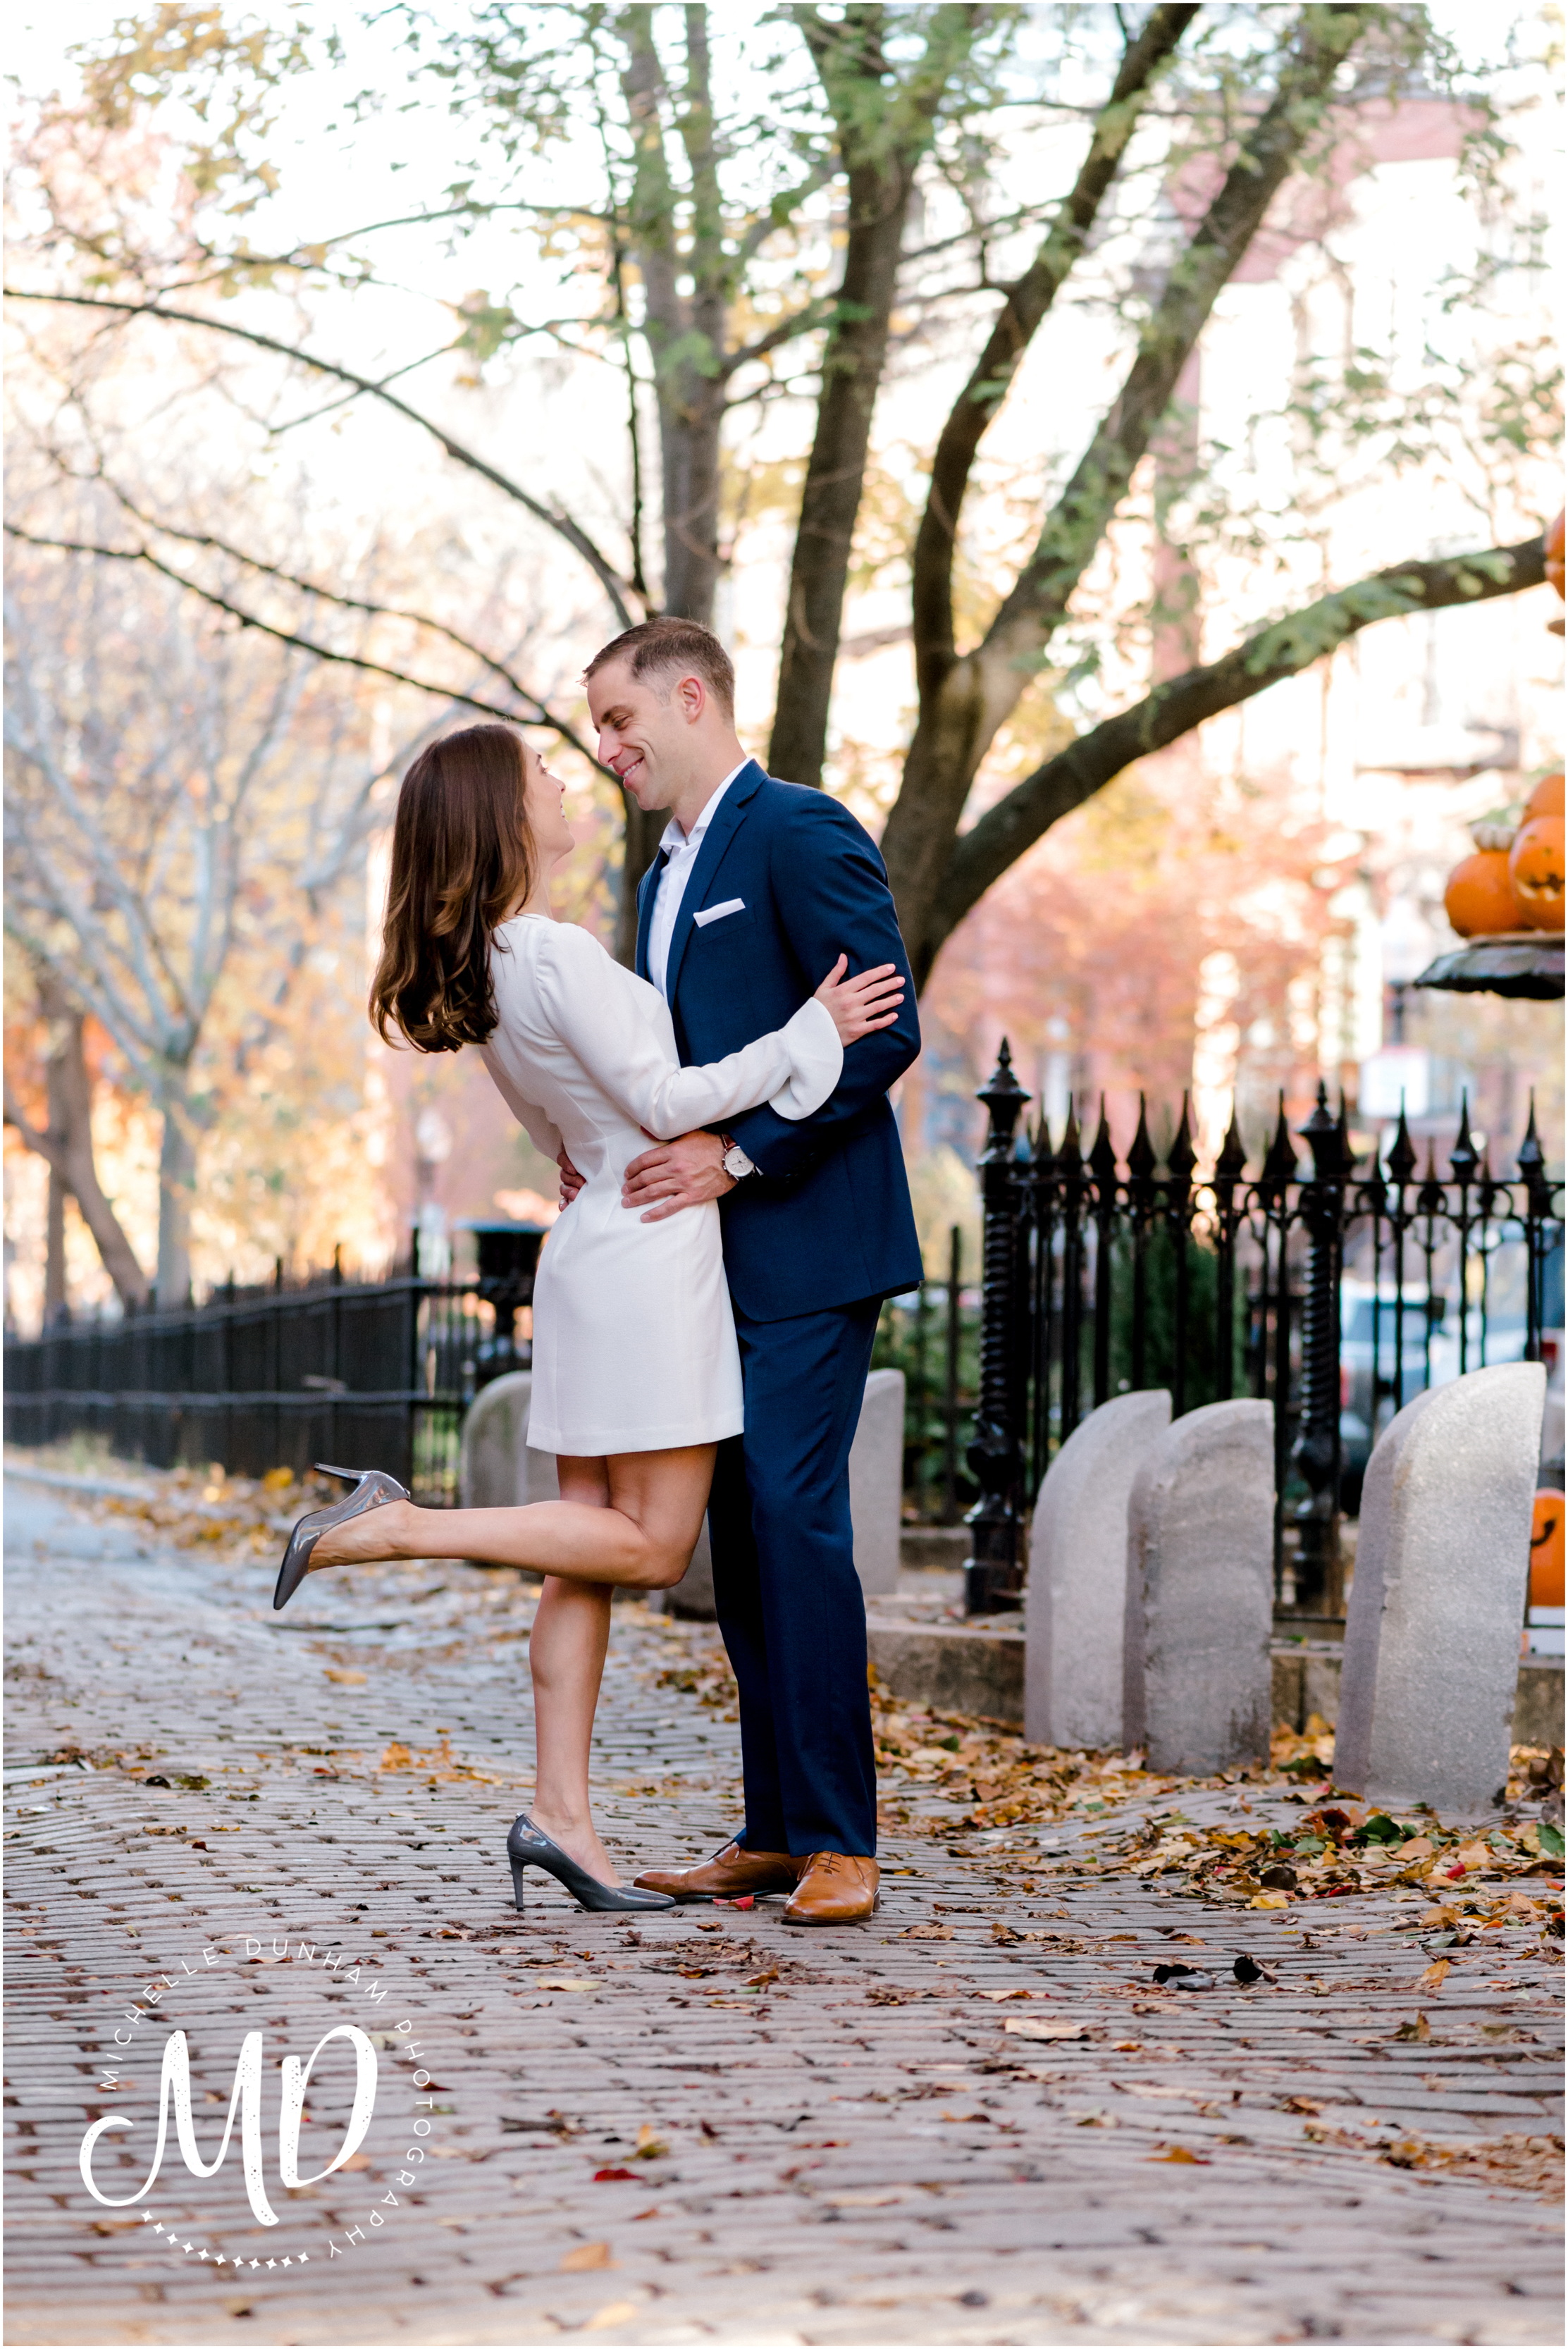 Michelle-Dunham-Photography-Engagement-South-End-Boston-4.jpg